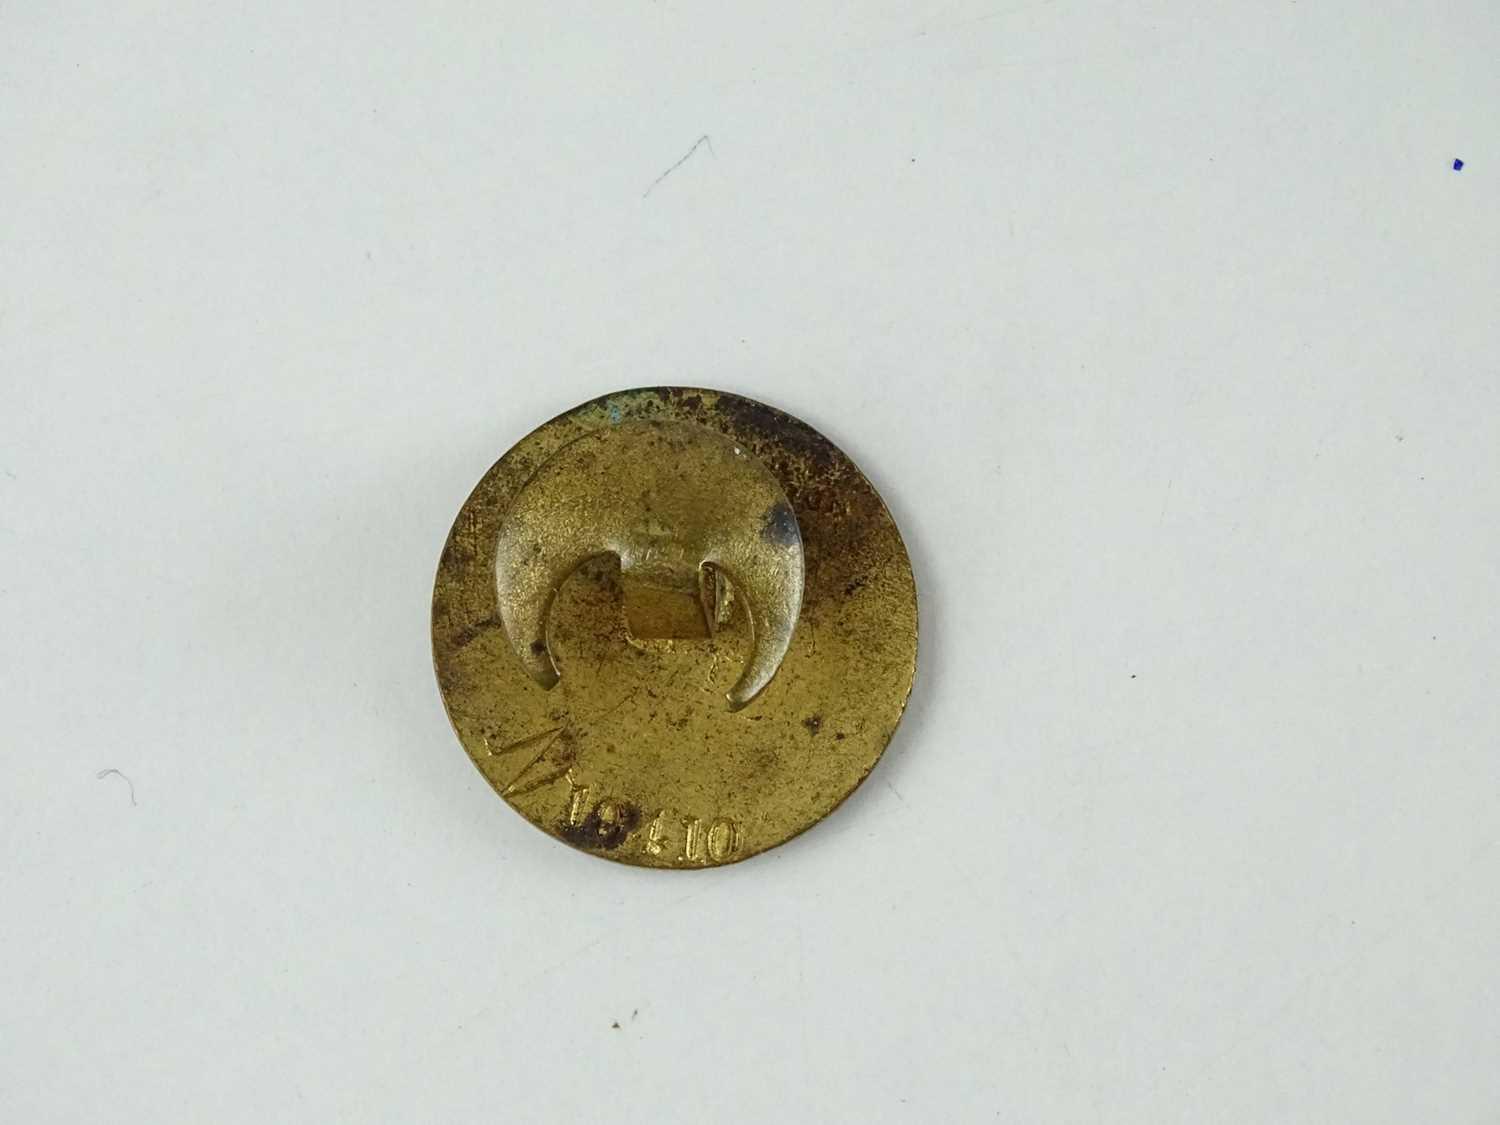 A Great Eastern Railway WW1 Railway Service Badge - stamped to rear 'J A Wylie' and numbered N10410 - Image 2 of 2